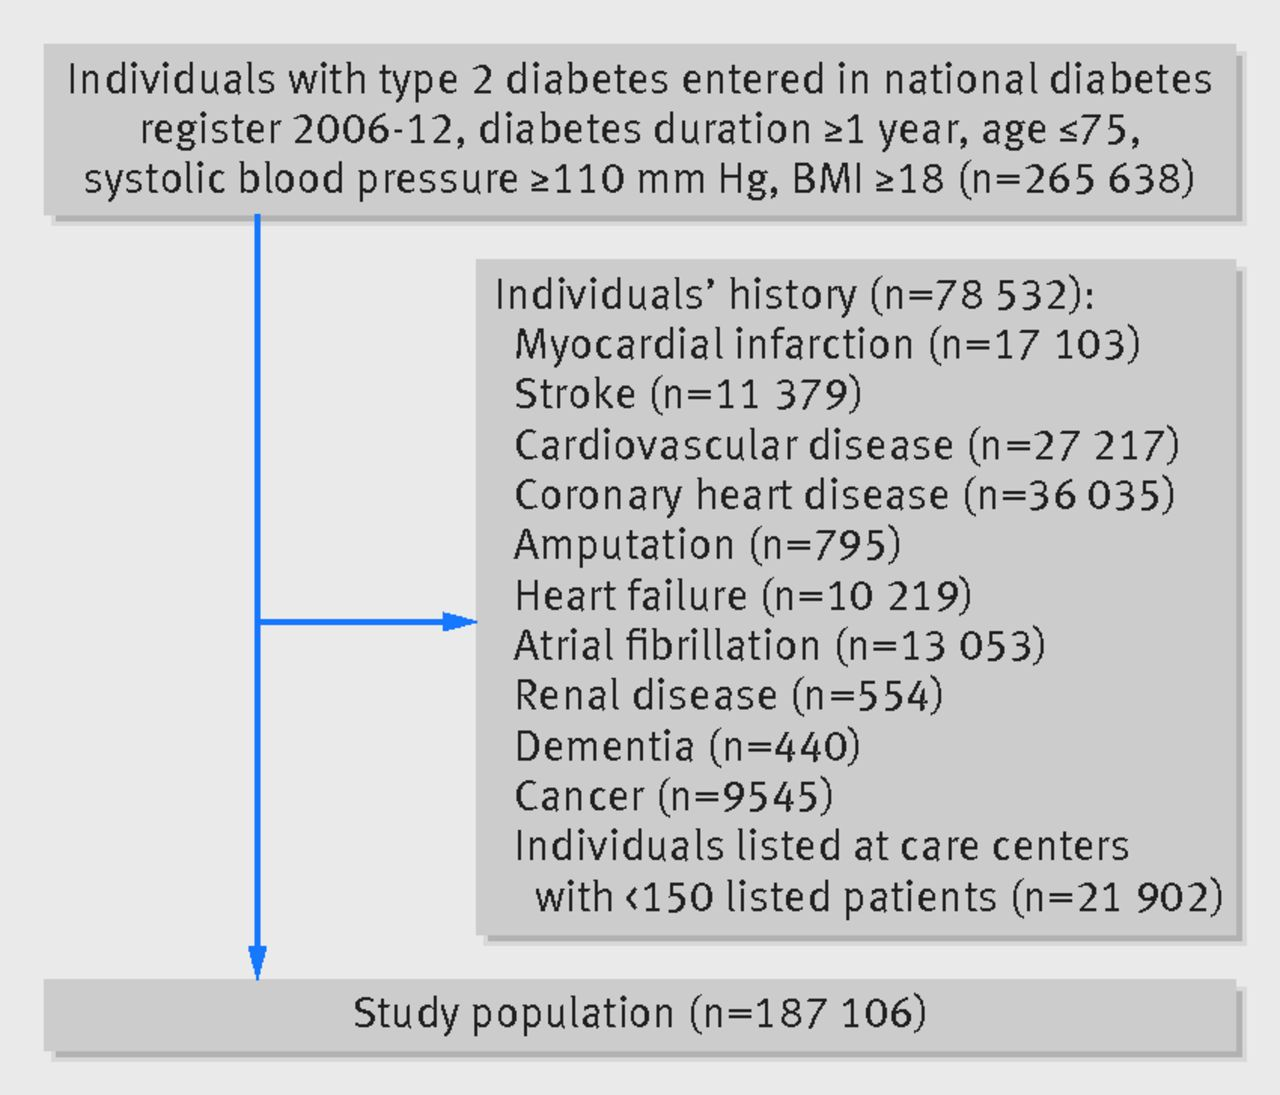 blood pressure and complications in individuals with type 2 diabetes